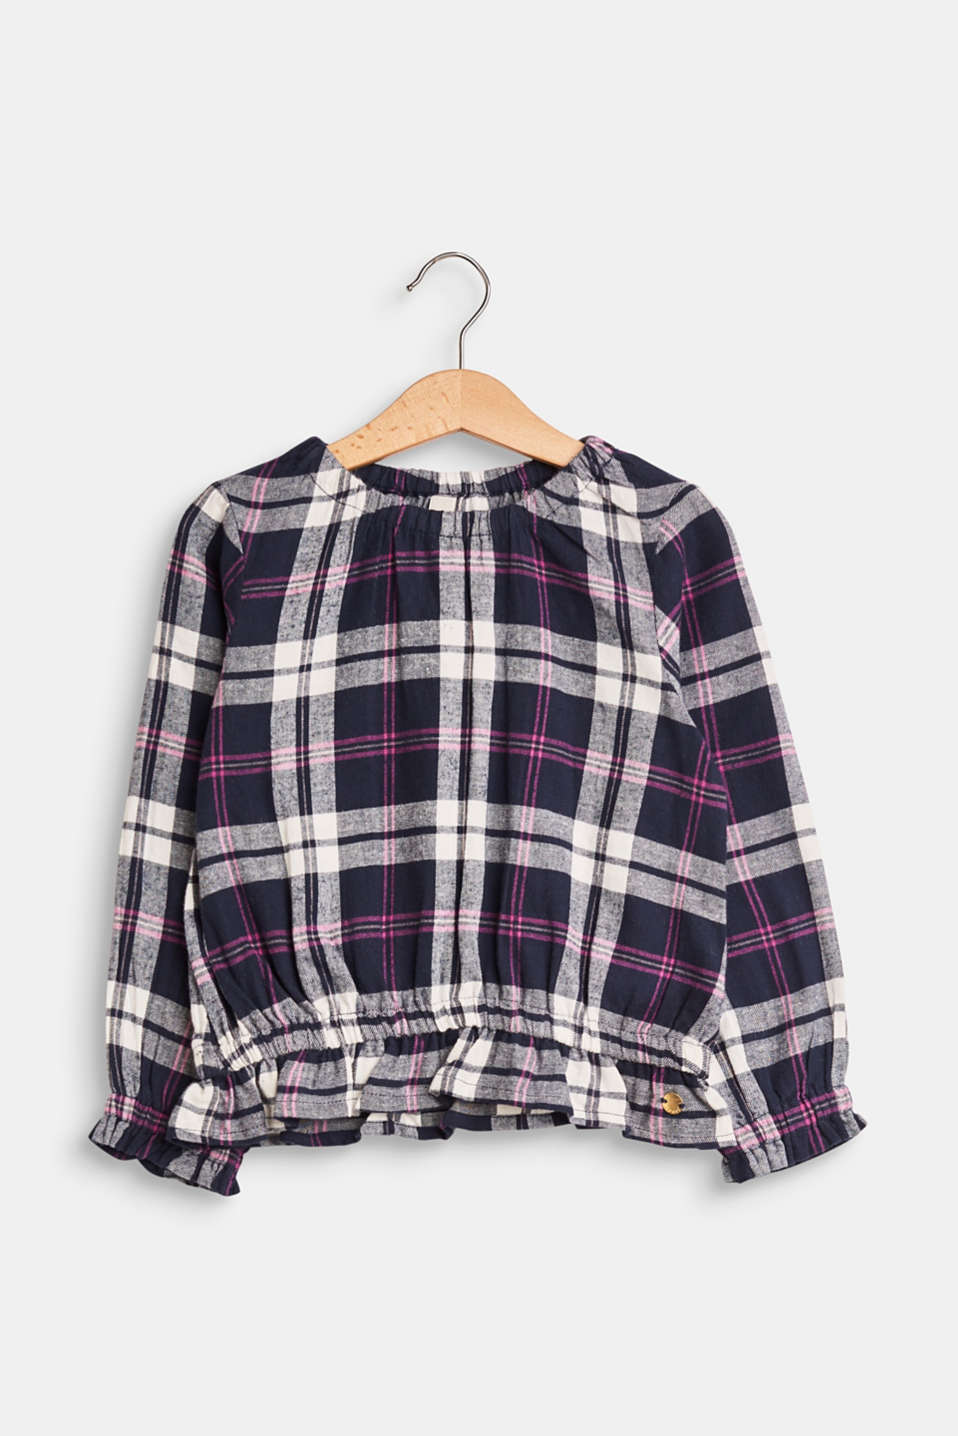 Esprit - Checked blouse with an elasticated hem, 100% cotton